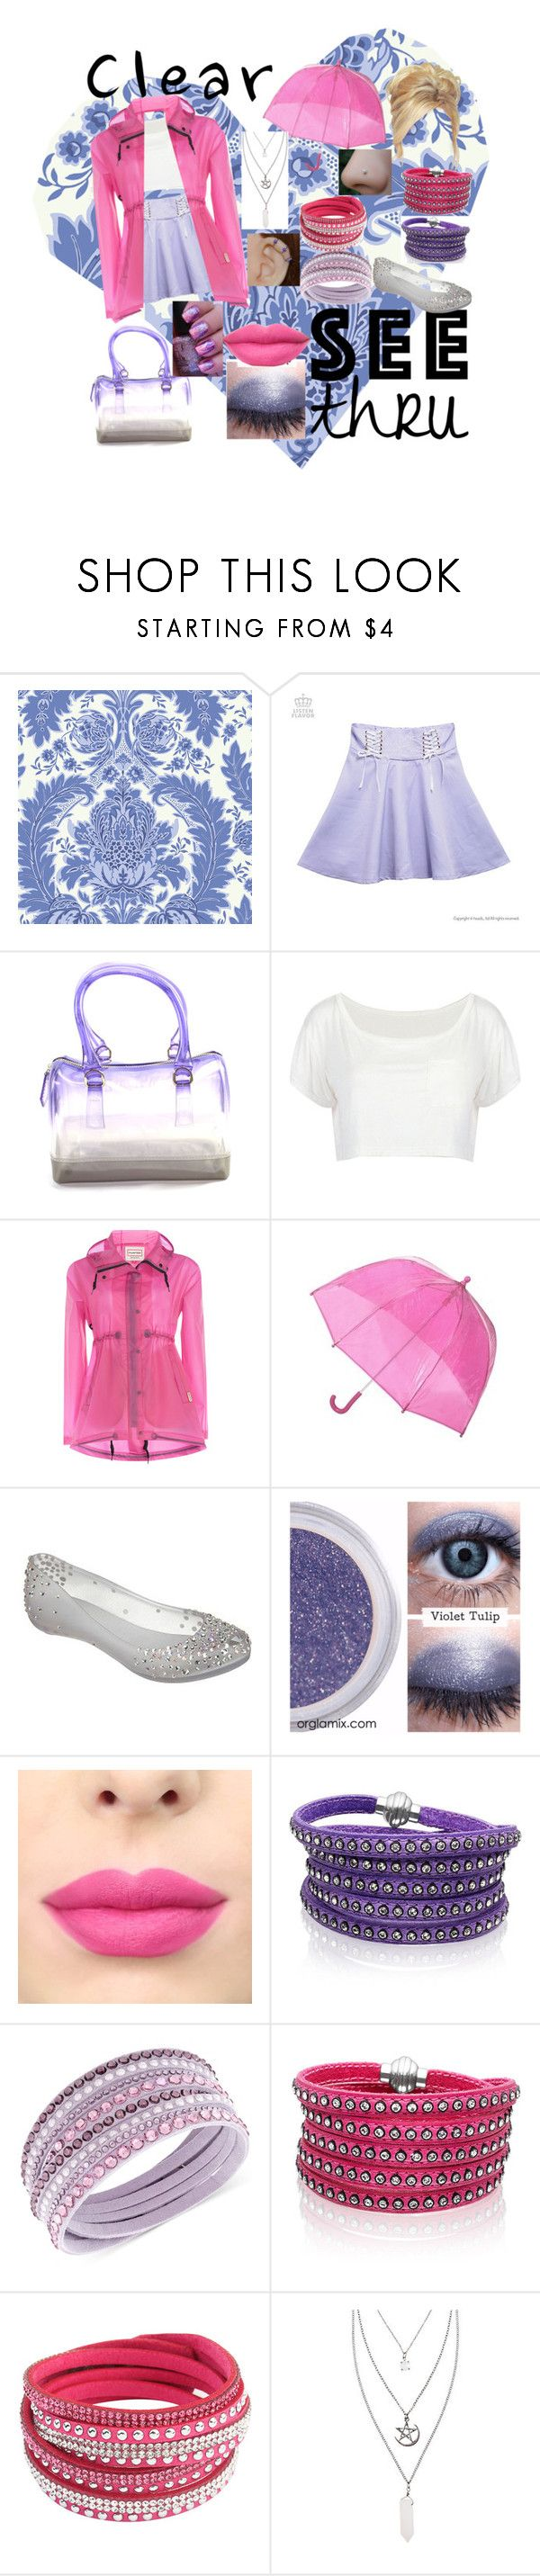 """""""Clear Pink & Purple"""" by mysticalwiccan ❤ liked on Polyvore featuring Cole & Son, Hunter, Melissa, Sif Jakobs Jewellery, Swarovski, Chicnova Fashion, clear and Seethru"""